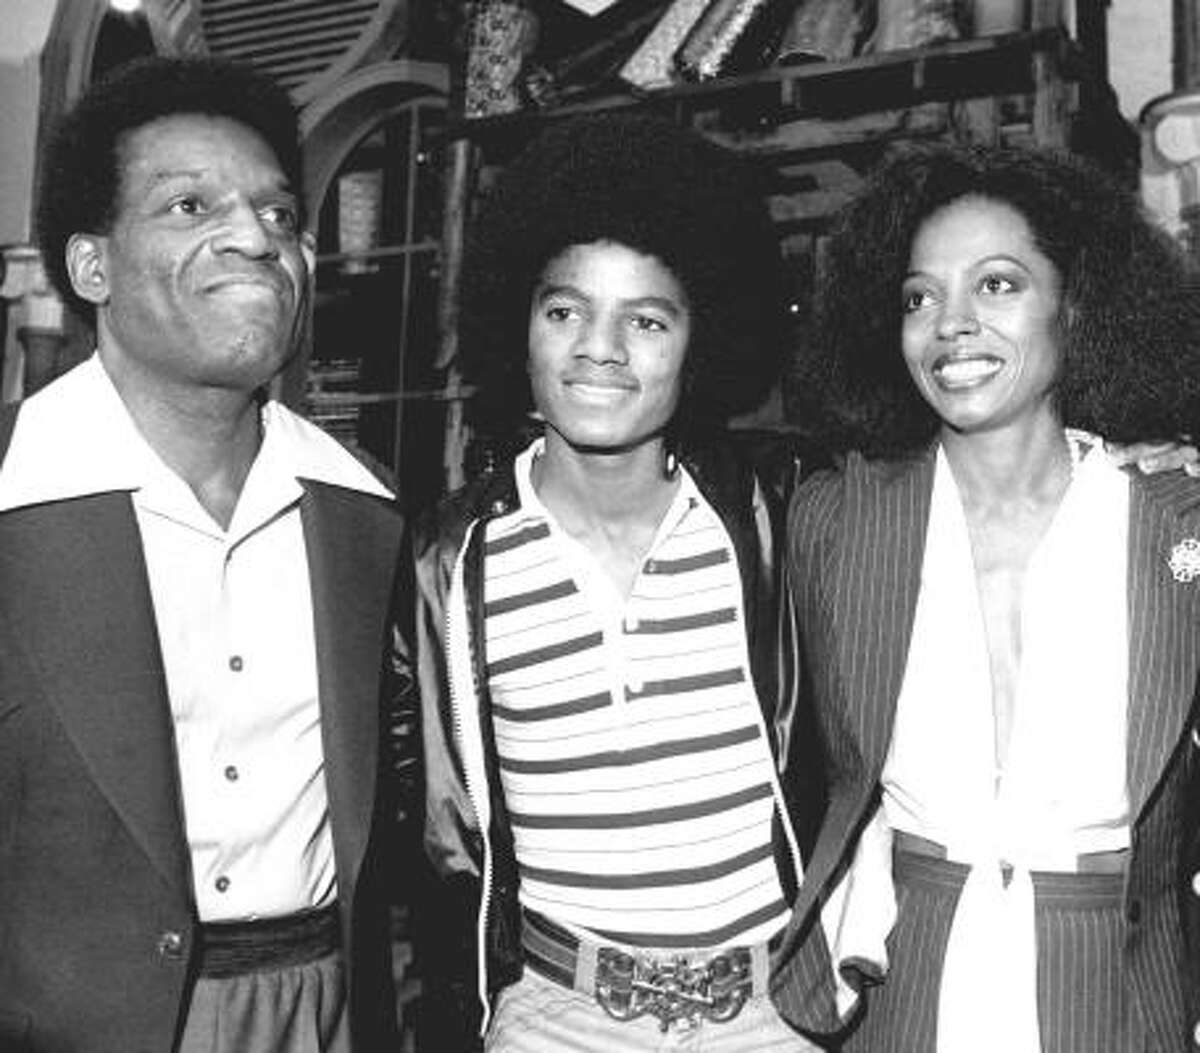 Stars of the The Wiz, a film adaptation of the Broadway musical of the same title in New York City, Sept. 28, 1977. From left: Nipsey Russell, Michael Jackson and Diana Ross.